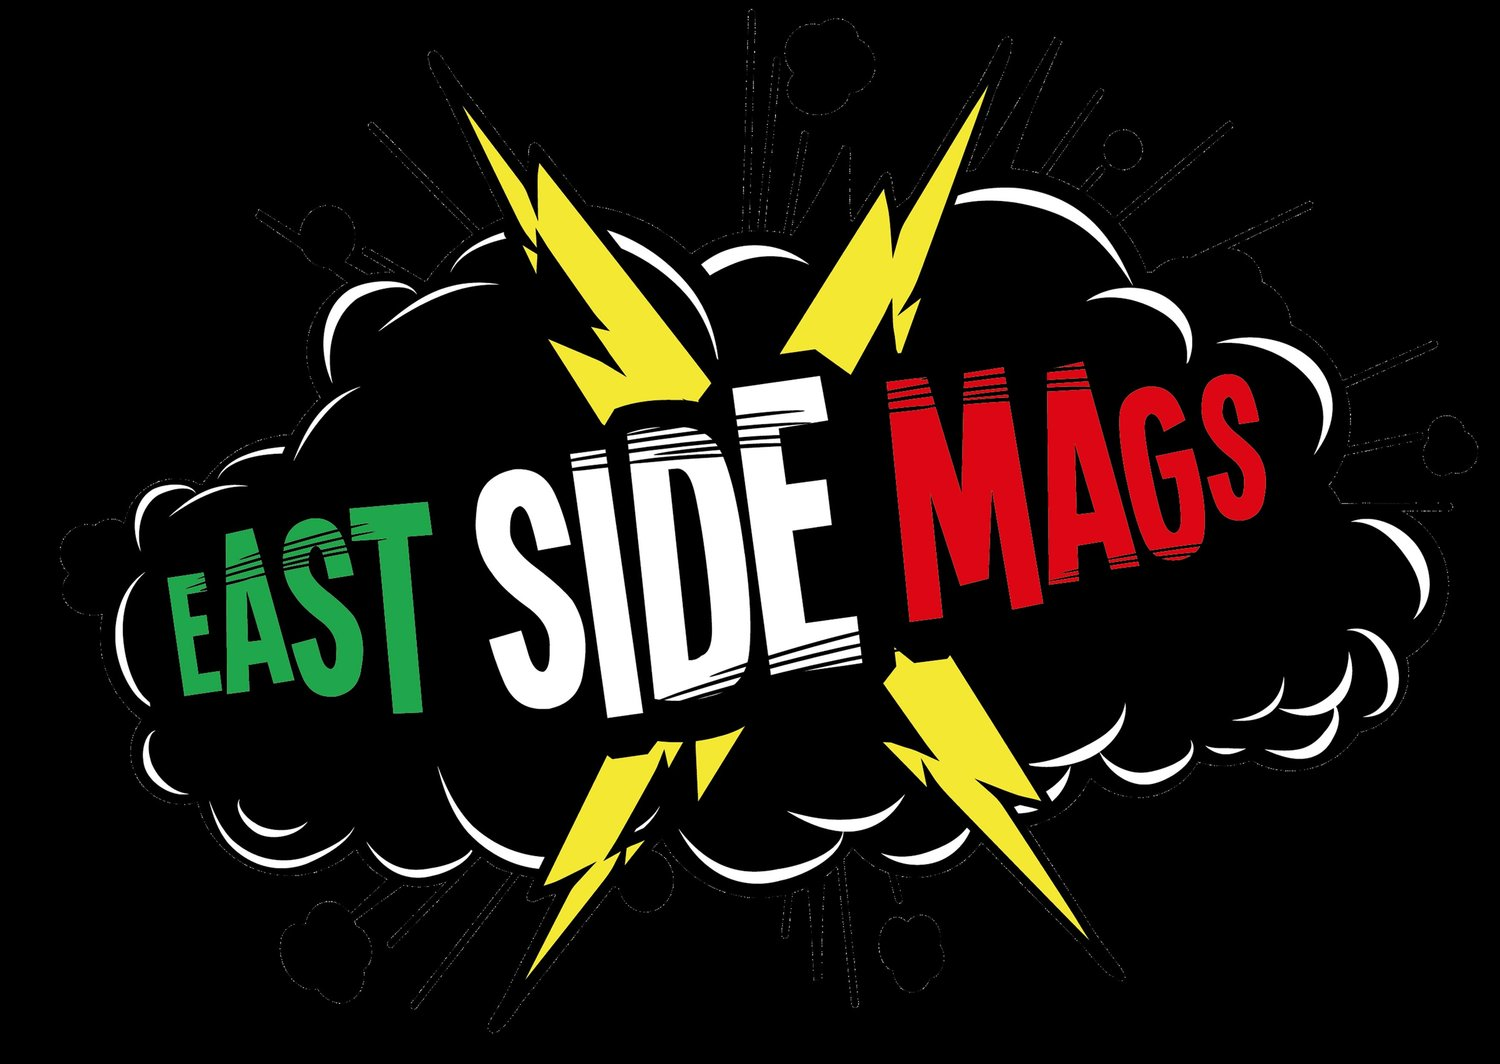 Events — East Side Mags